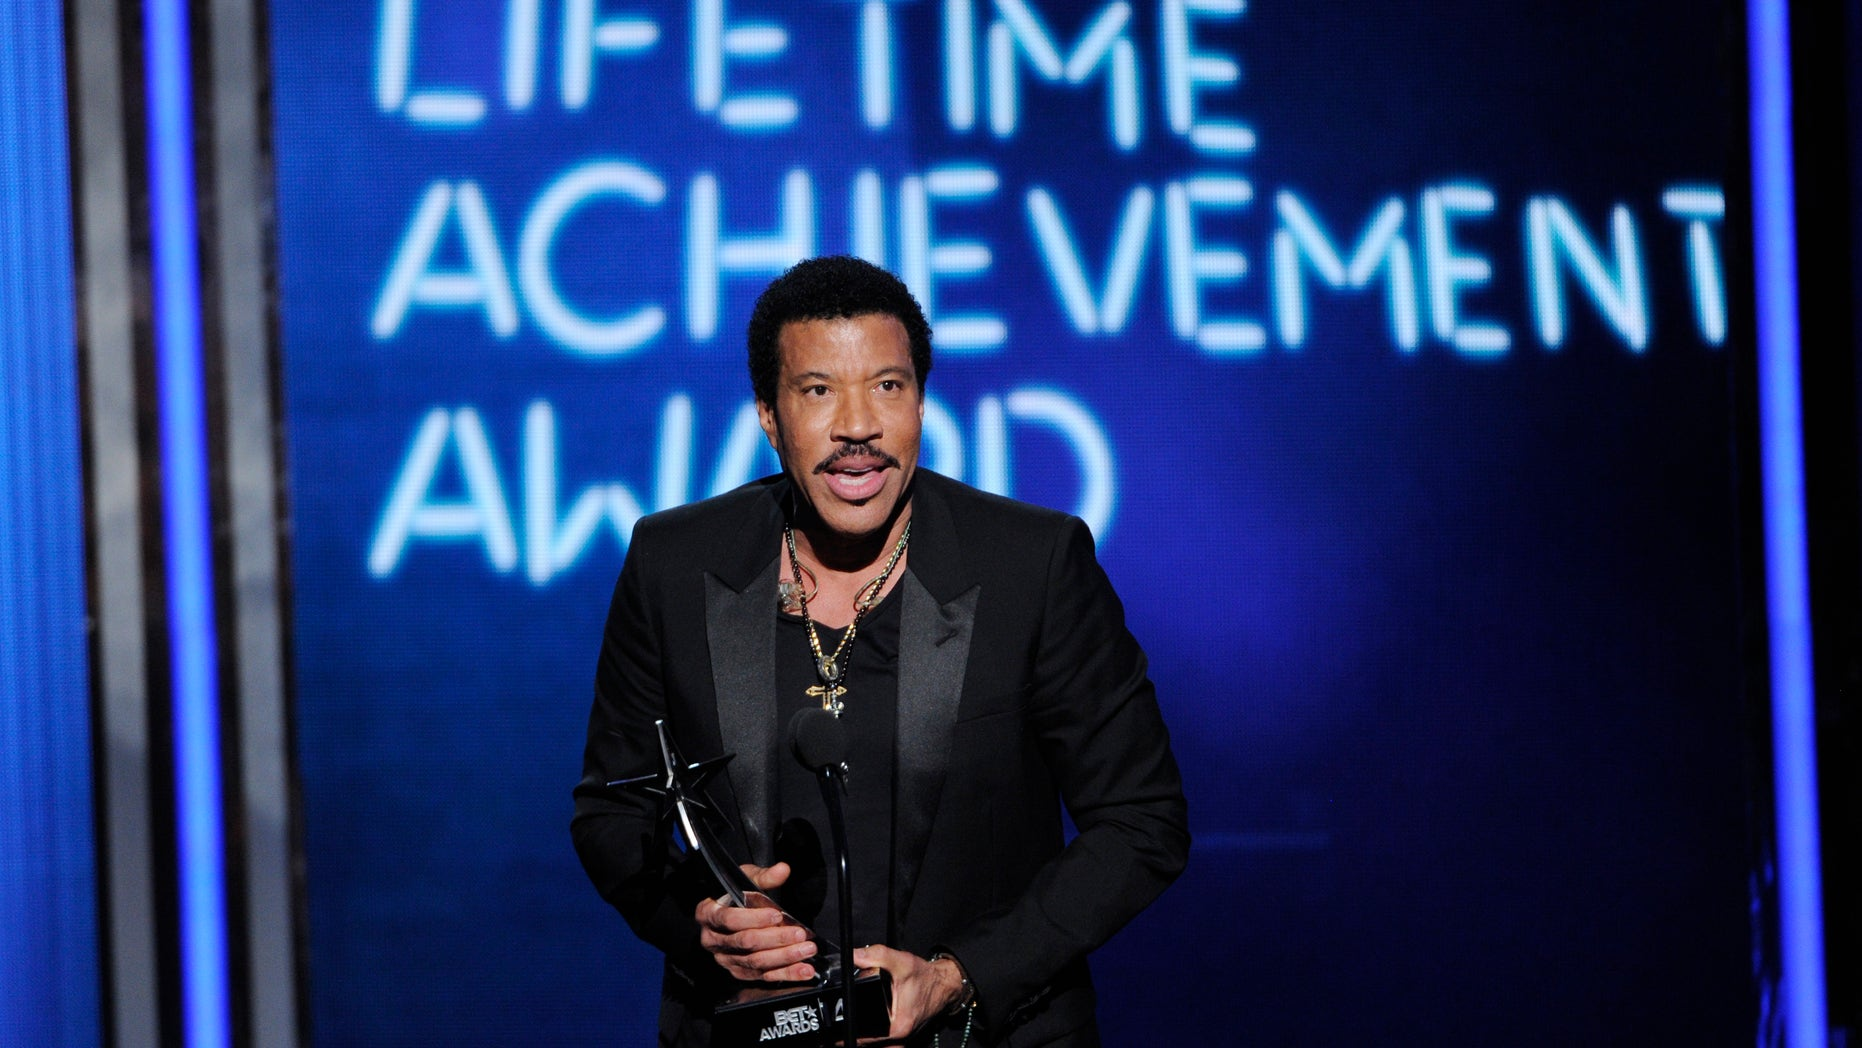 June 29, 2014. Lionel Richie accepts the lifetime achievement award at the BET Awards at the Nokia Theatre.